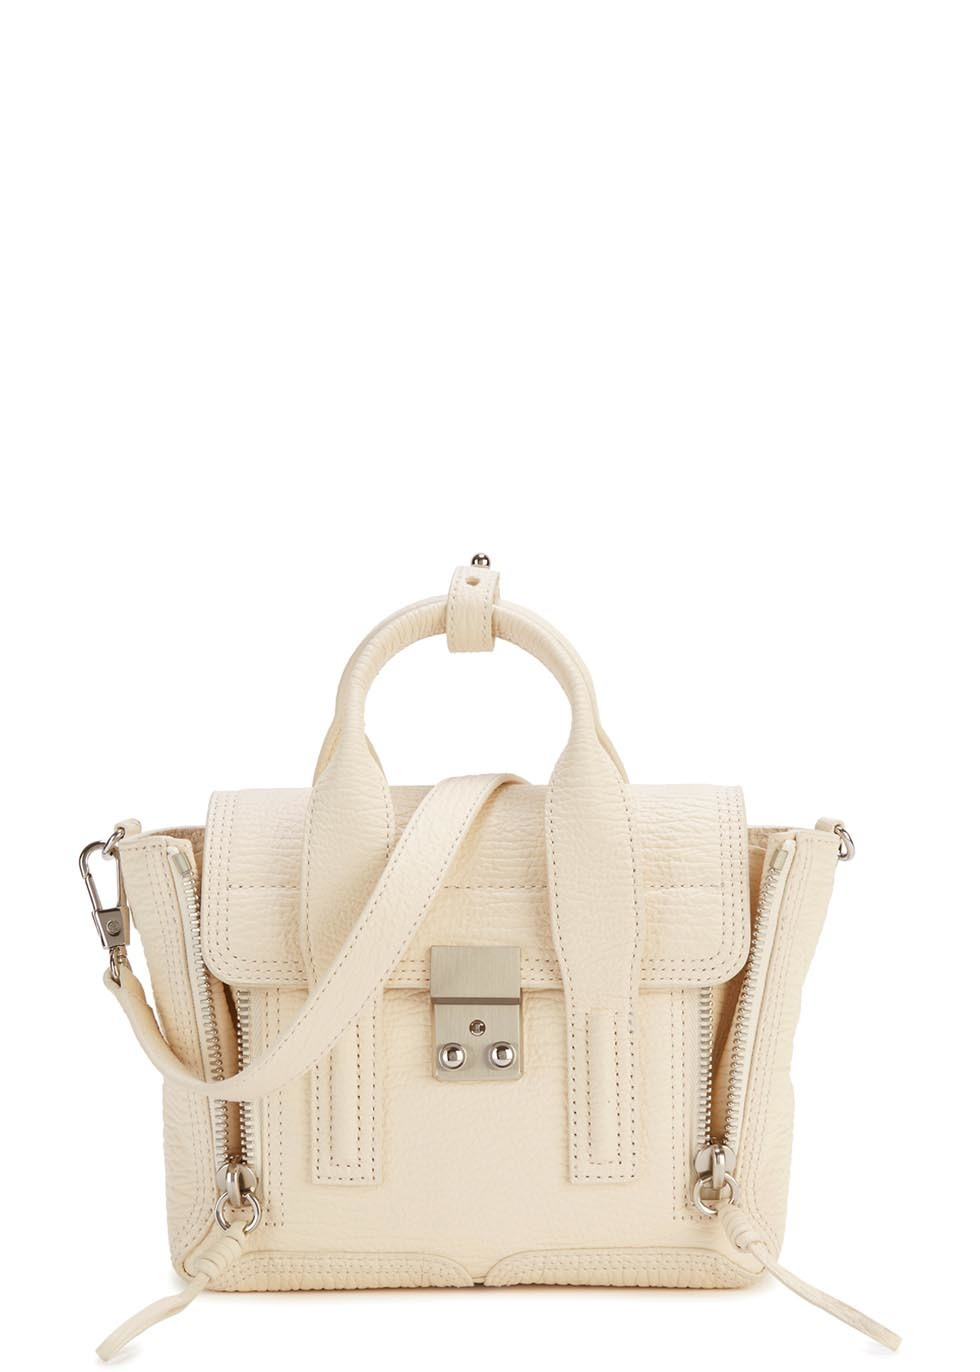 Pashli Mini Off White Leather Satchel - predominant colour: ivory/cream; occasions: casual, creative work; type of pattern: standard; style: tote; length: handle; size: standard; material: leather; pattern: plain; finish: plain; season: a/w 2015